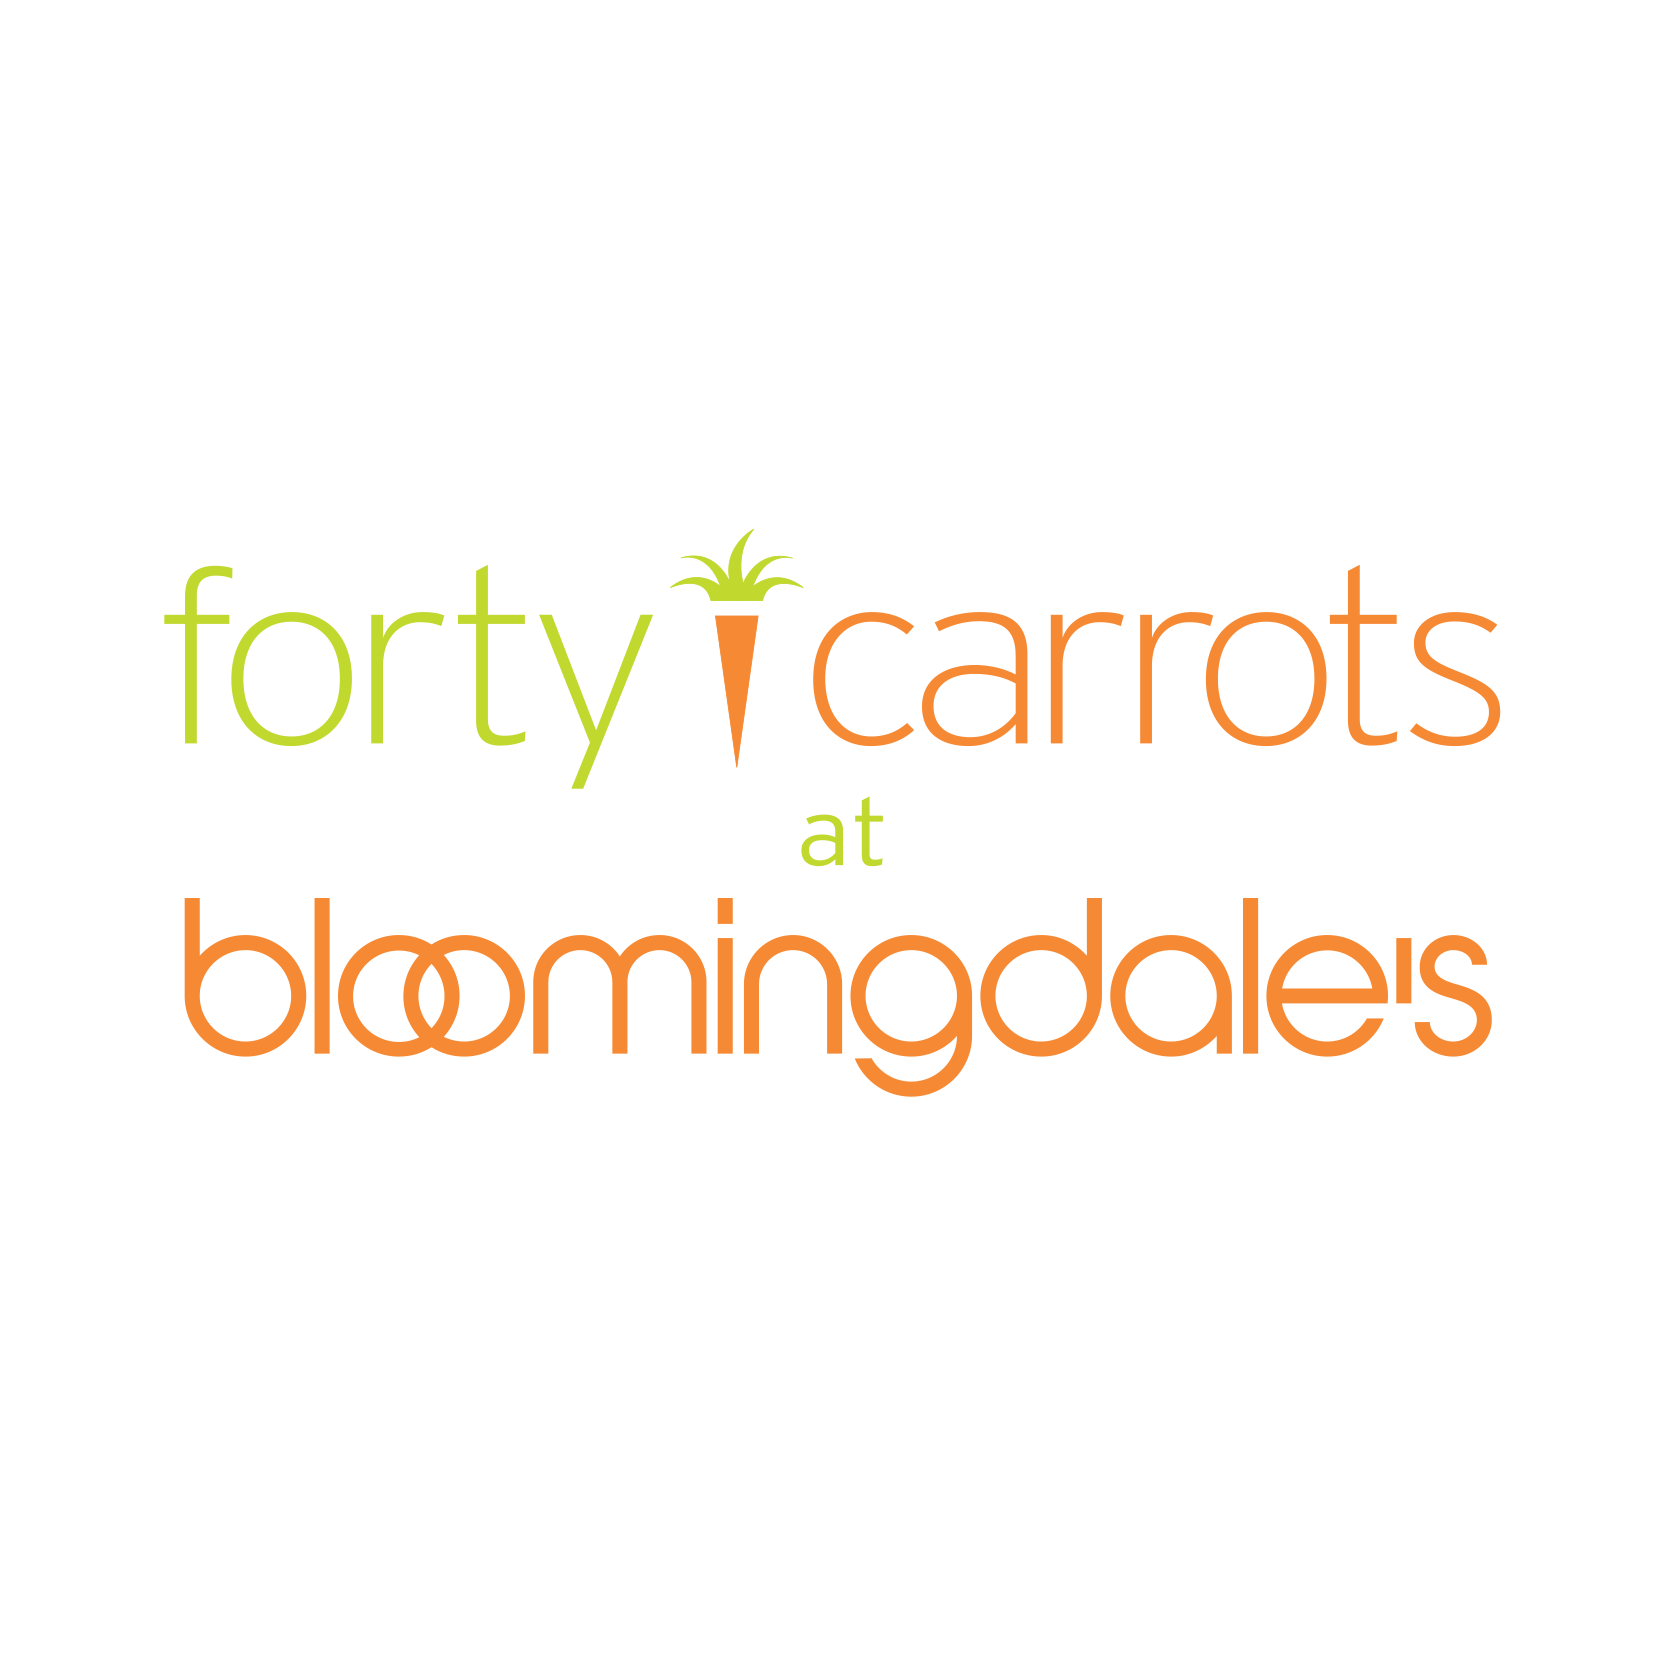 40 Carrots (2nd Floor of Bloomingdale's)